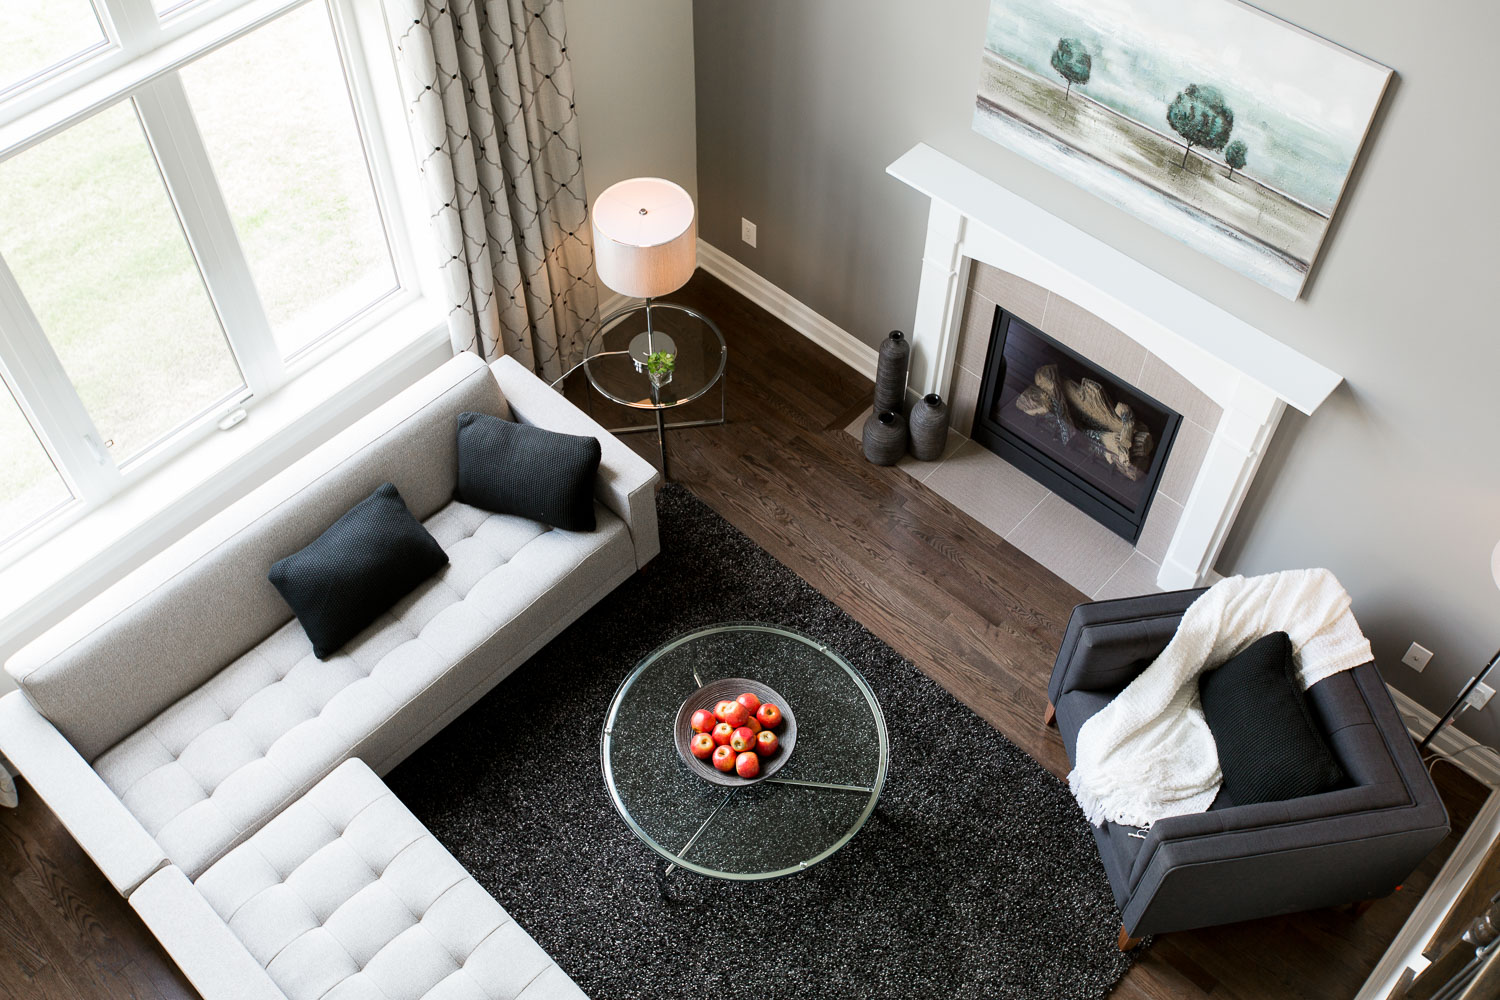 Photograph of a living room with a fireplace